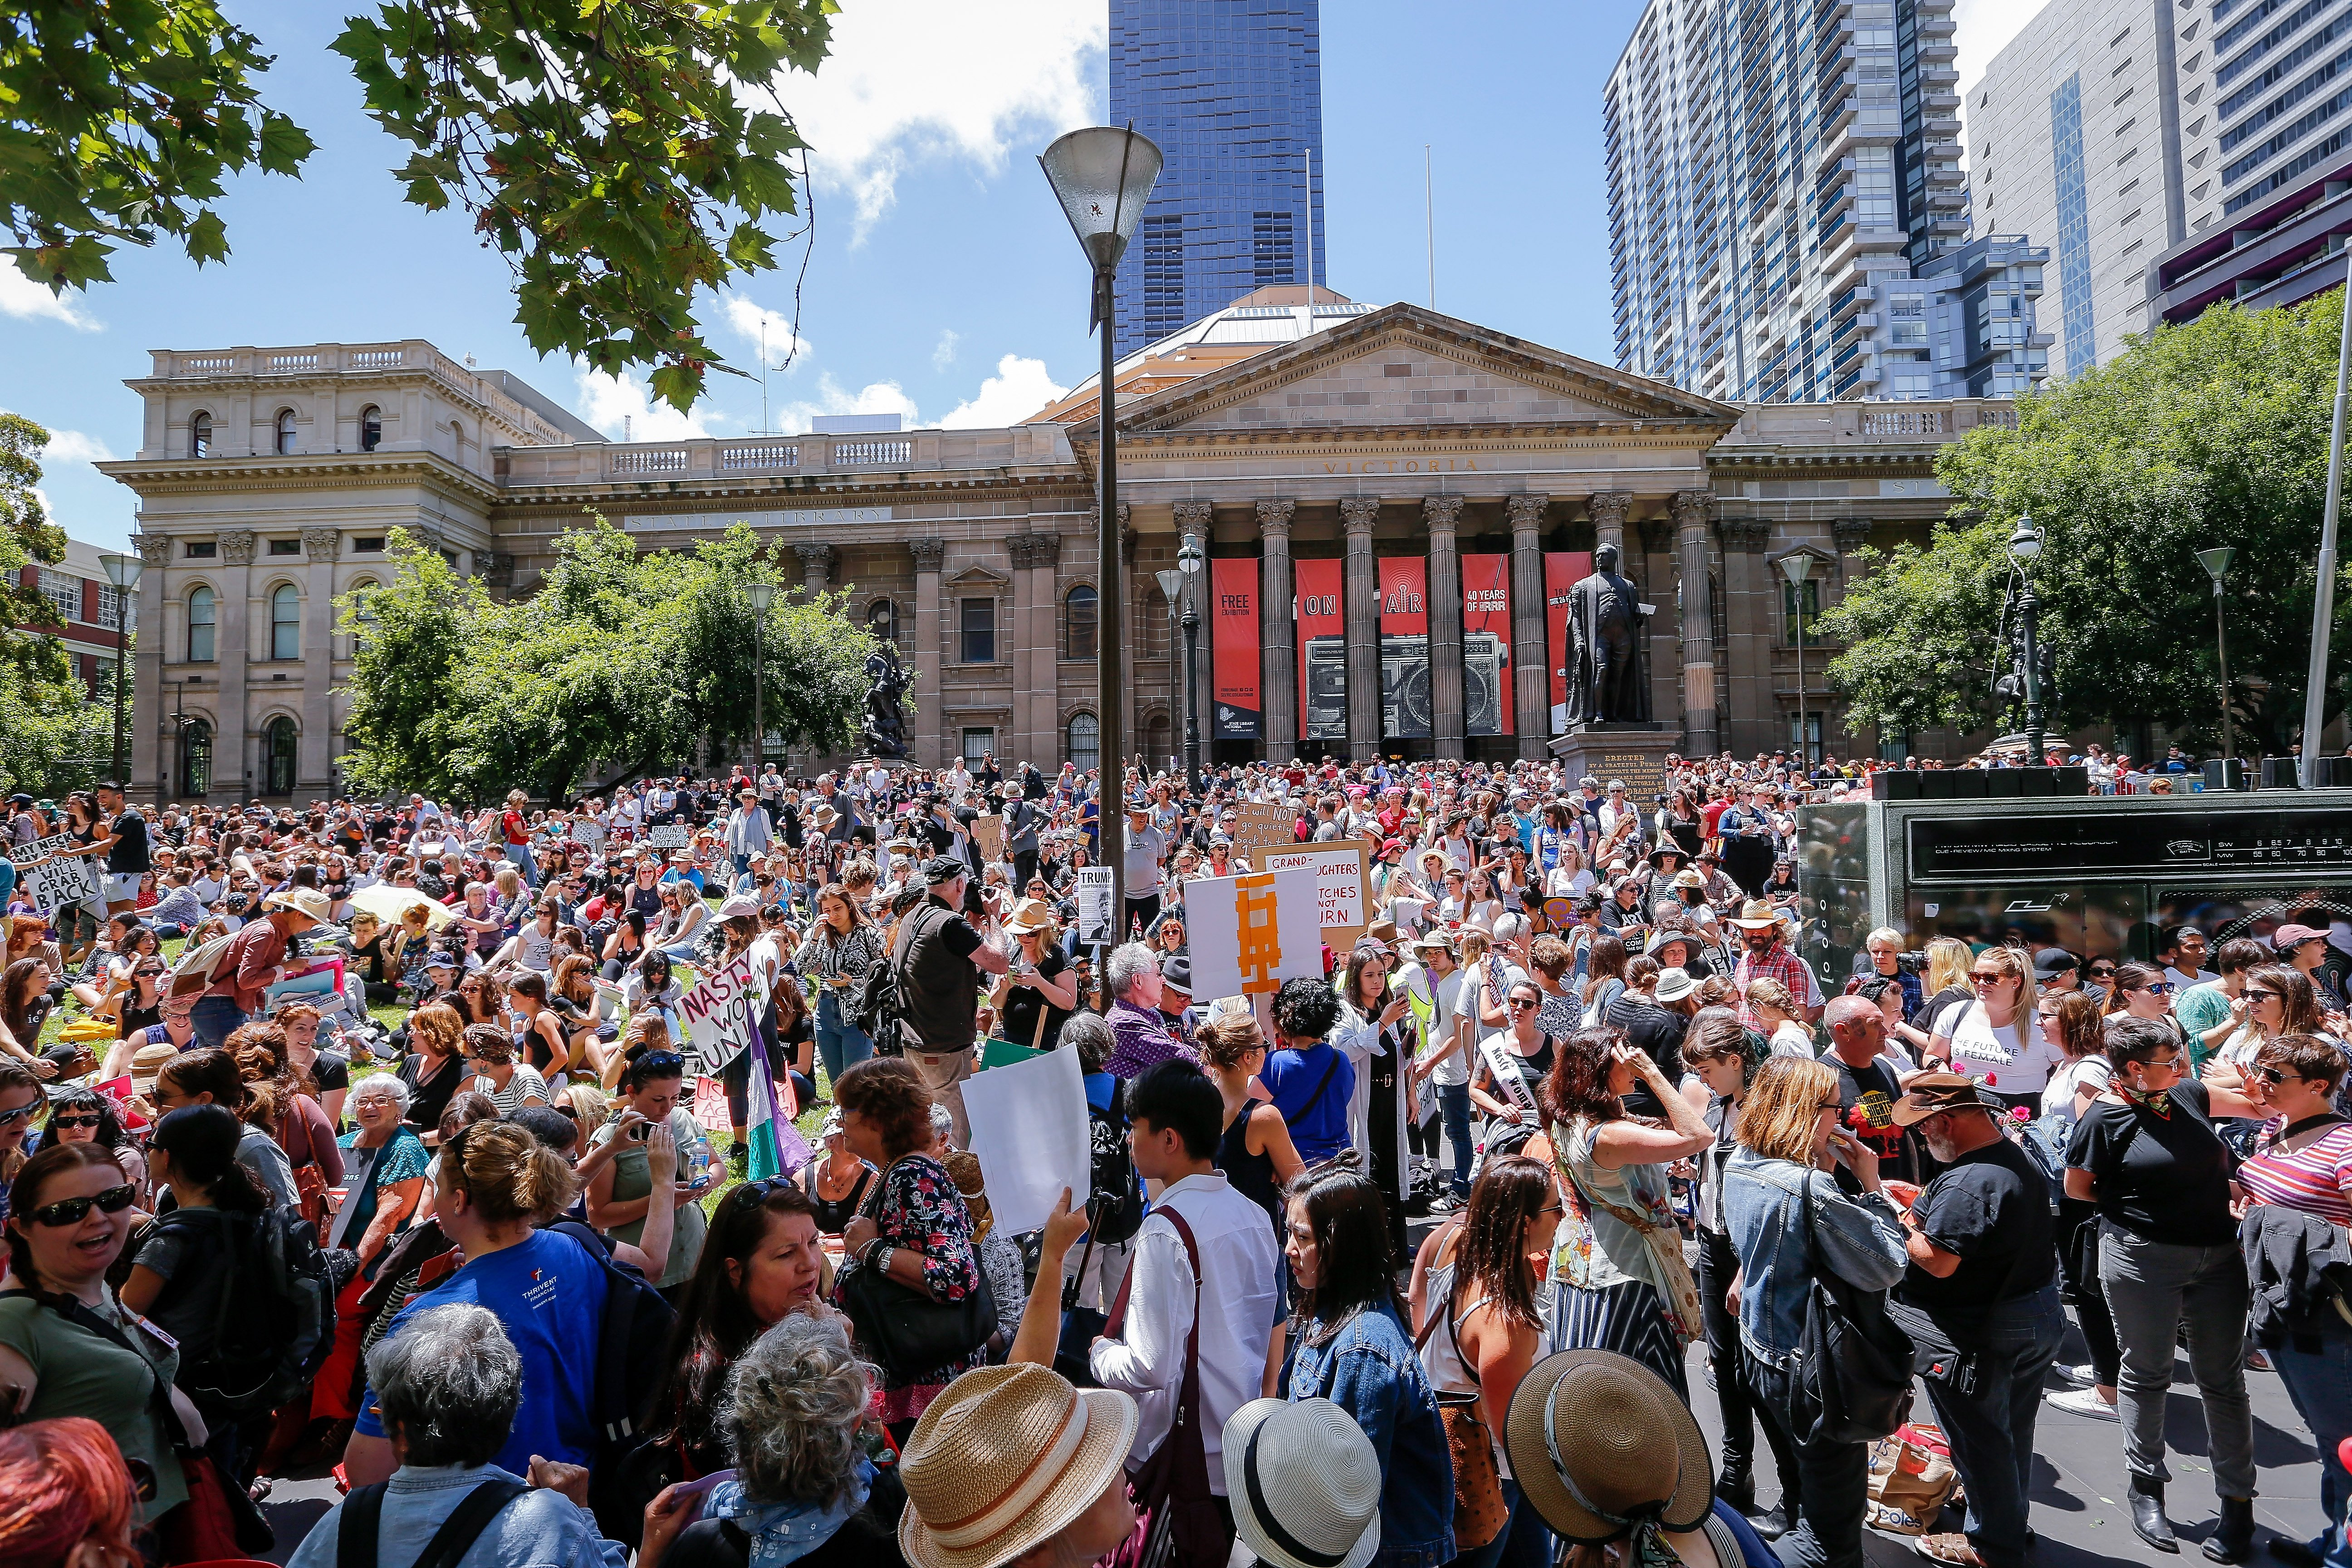 Protesters take part in the Melbourne rally to protest against the Trump Inauguration on Jan. 21, 2017 in Melbourne, Australia.